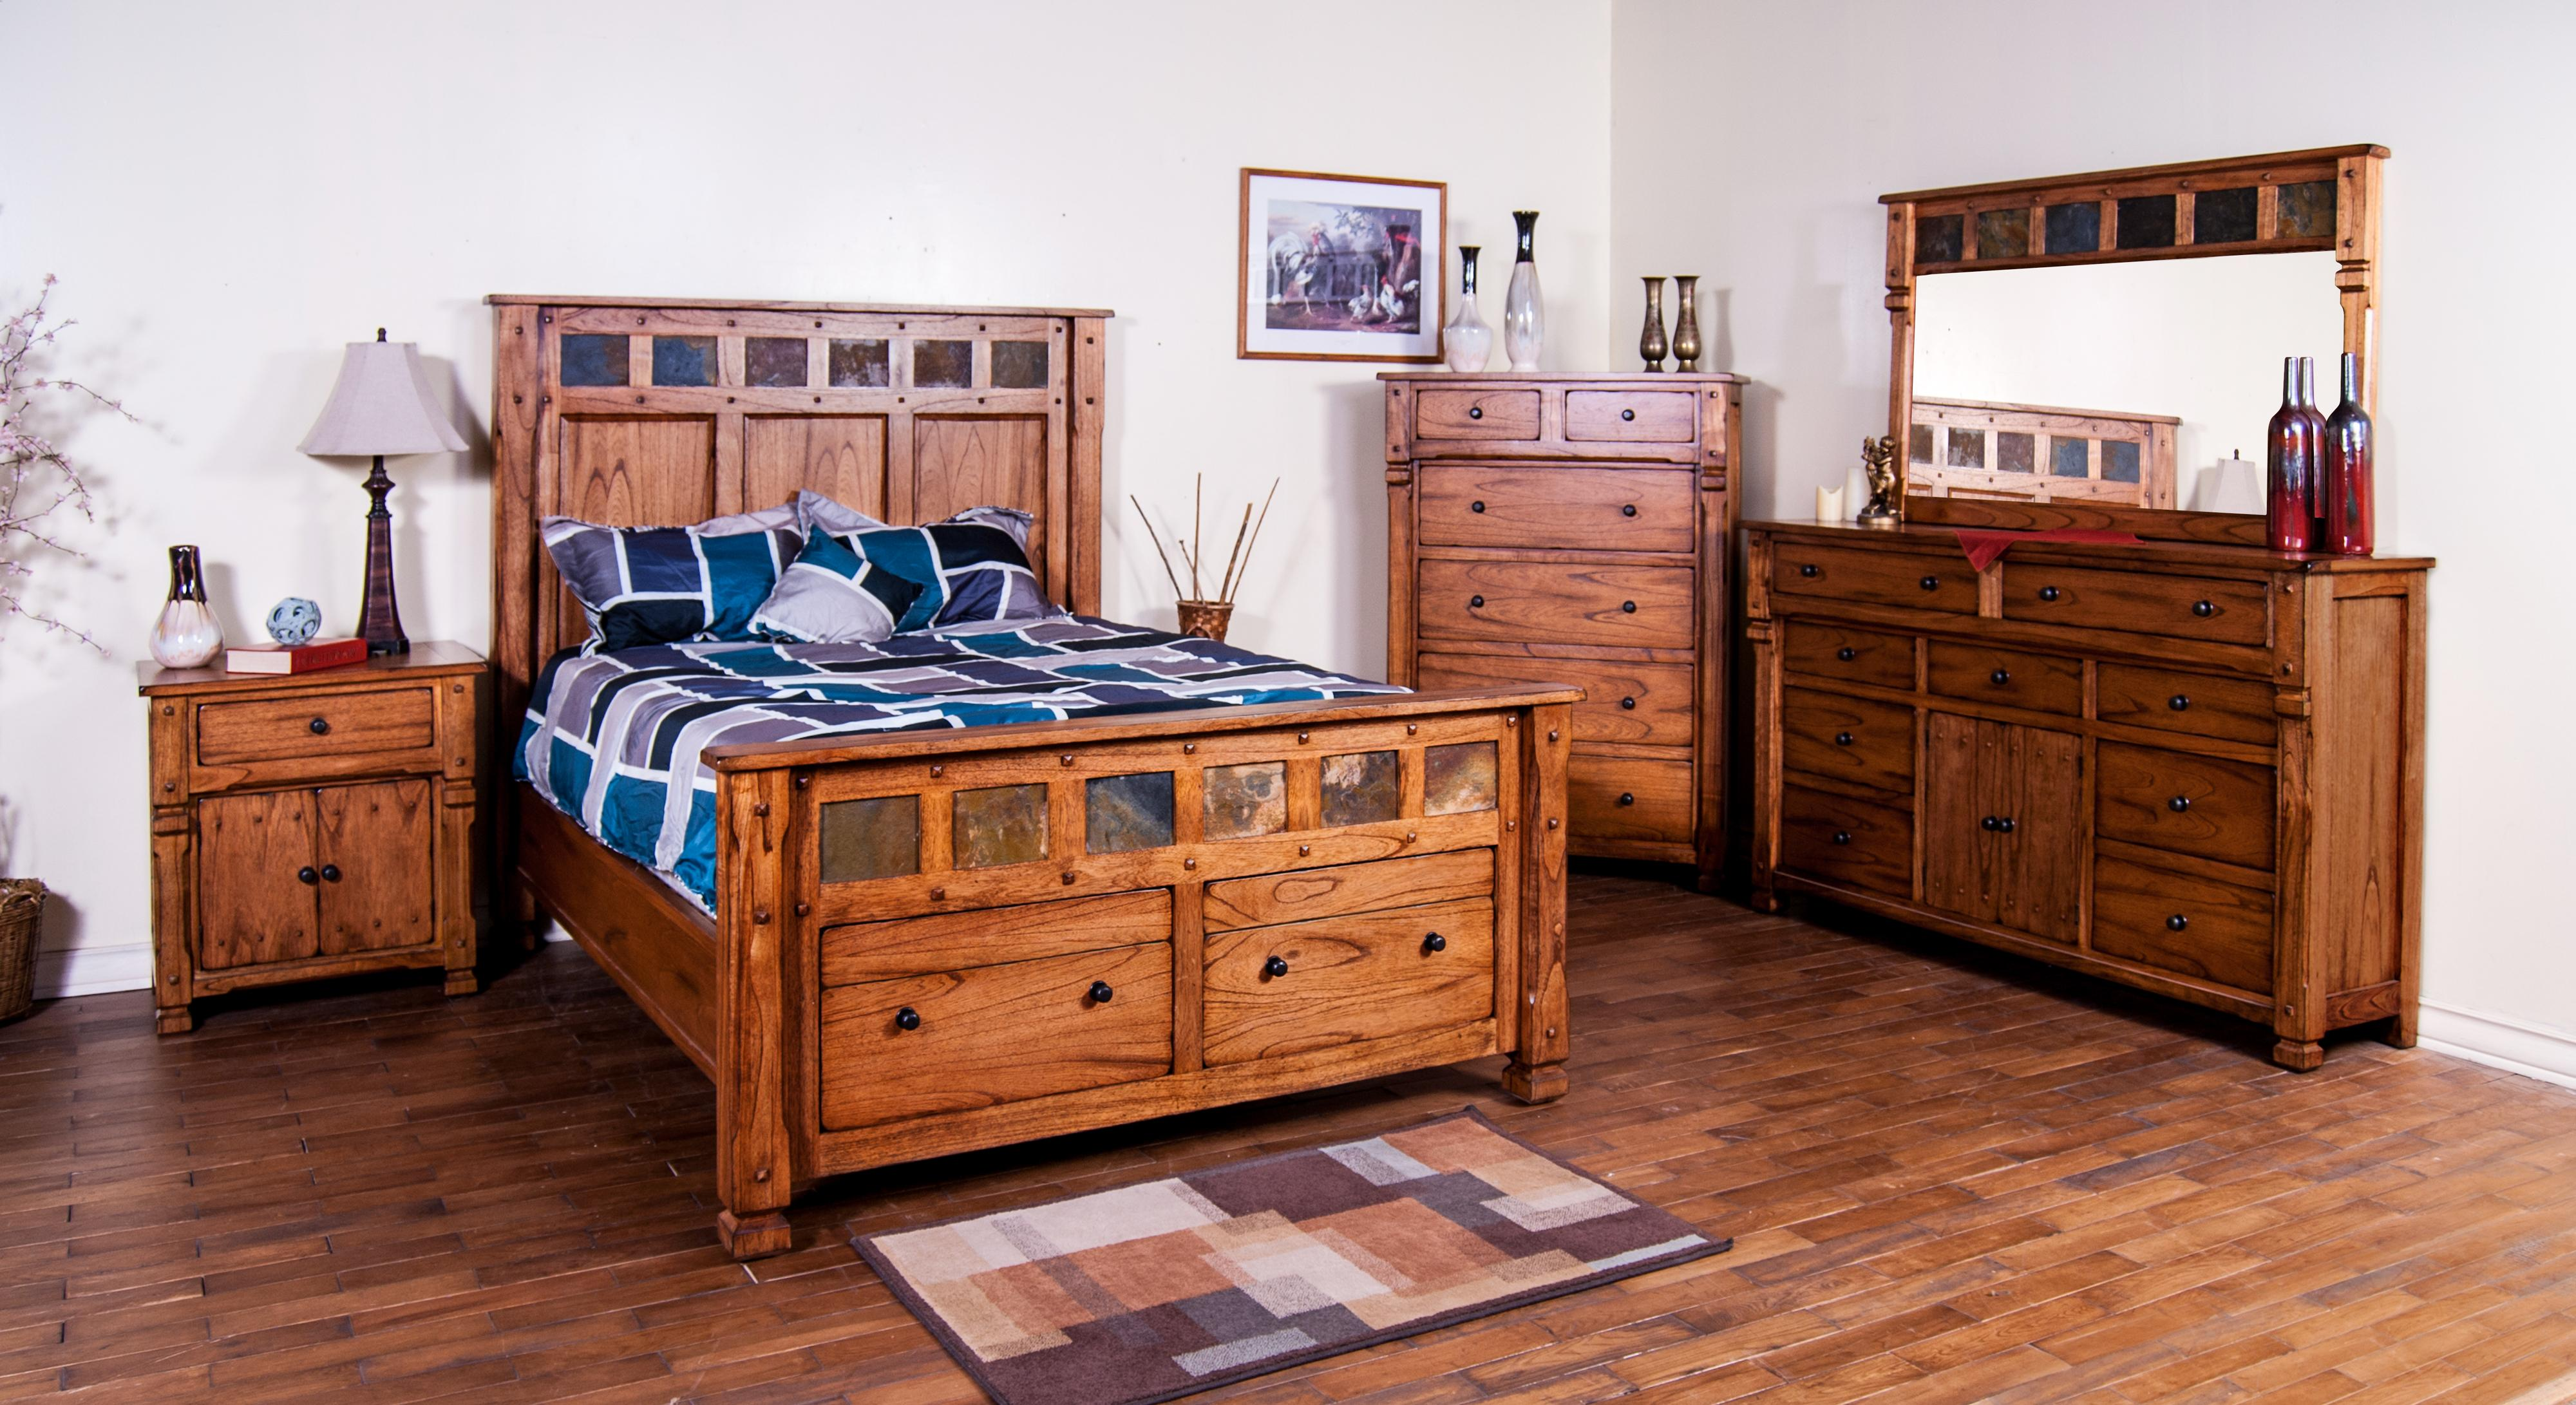 Bed furniture with drawers - Rustic Chest With Hideaway Drawer